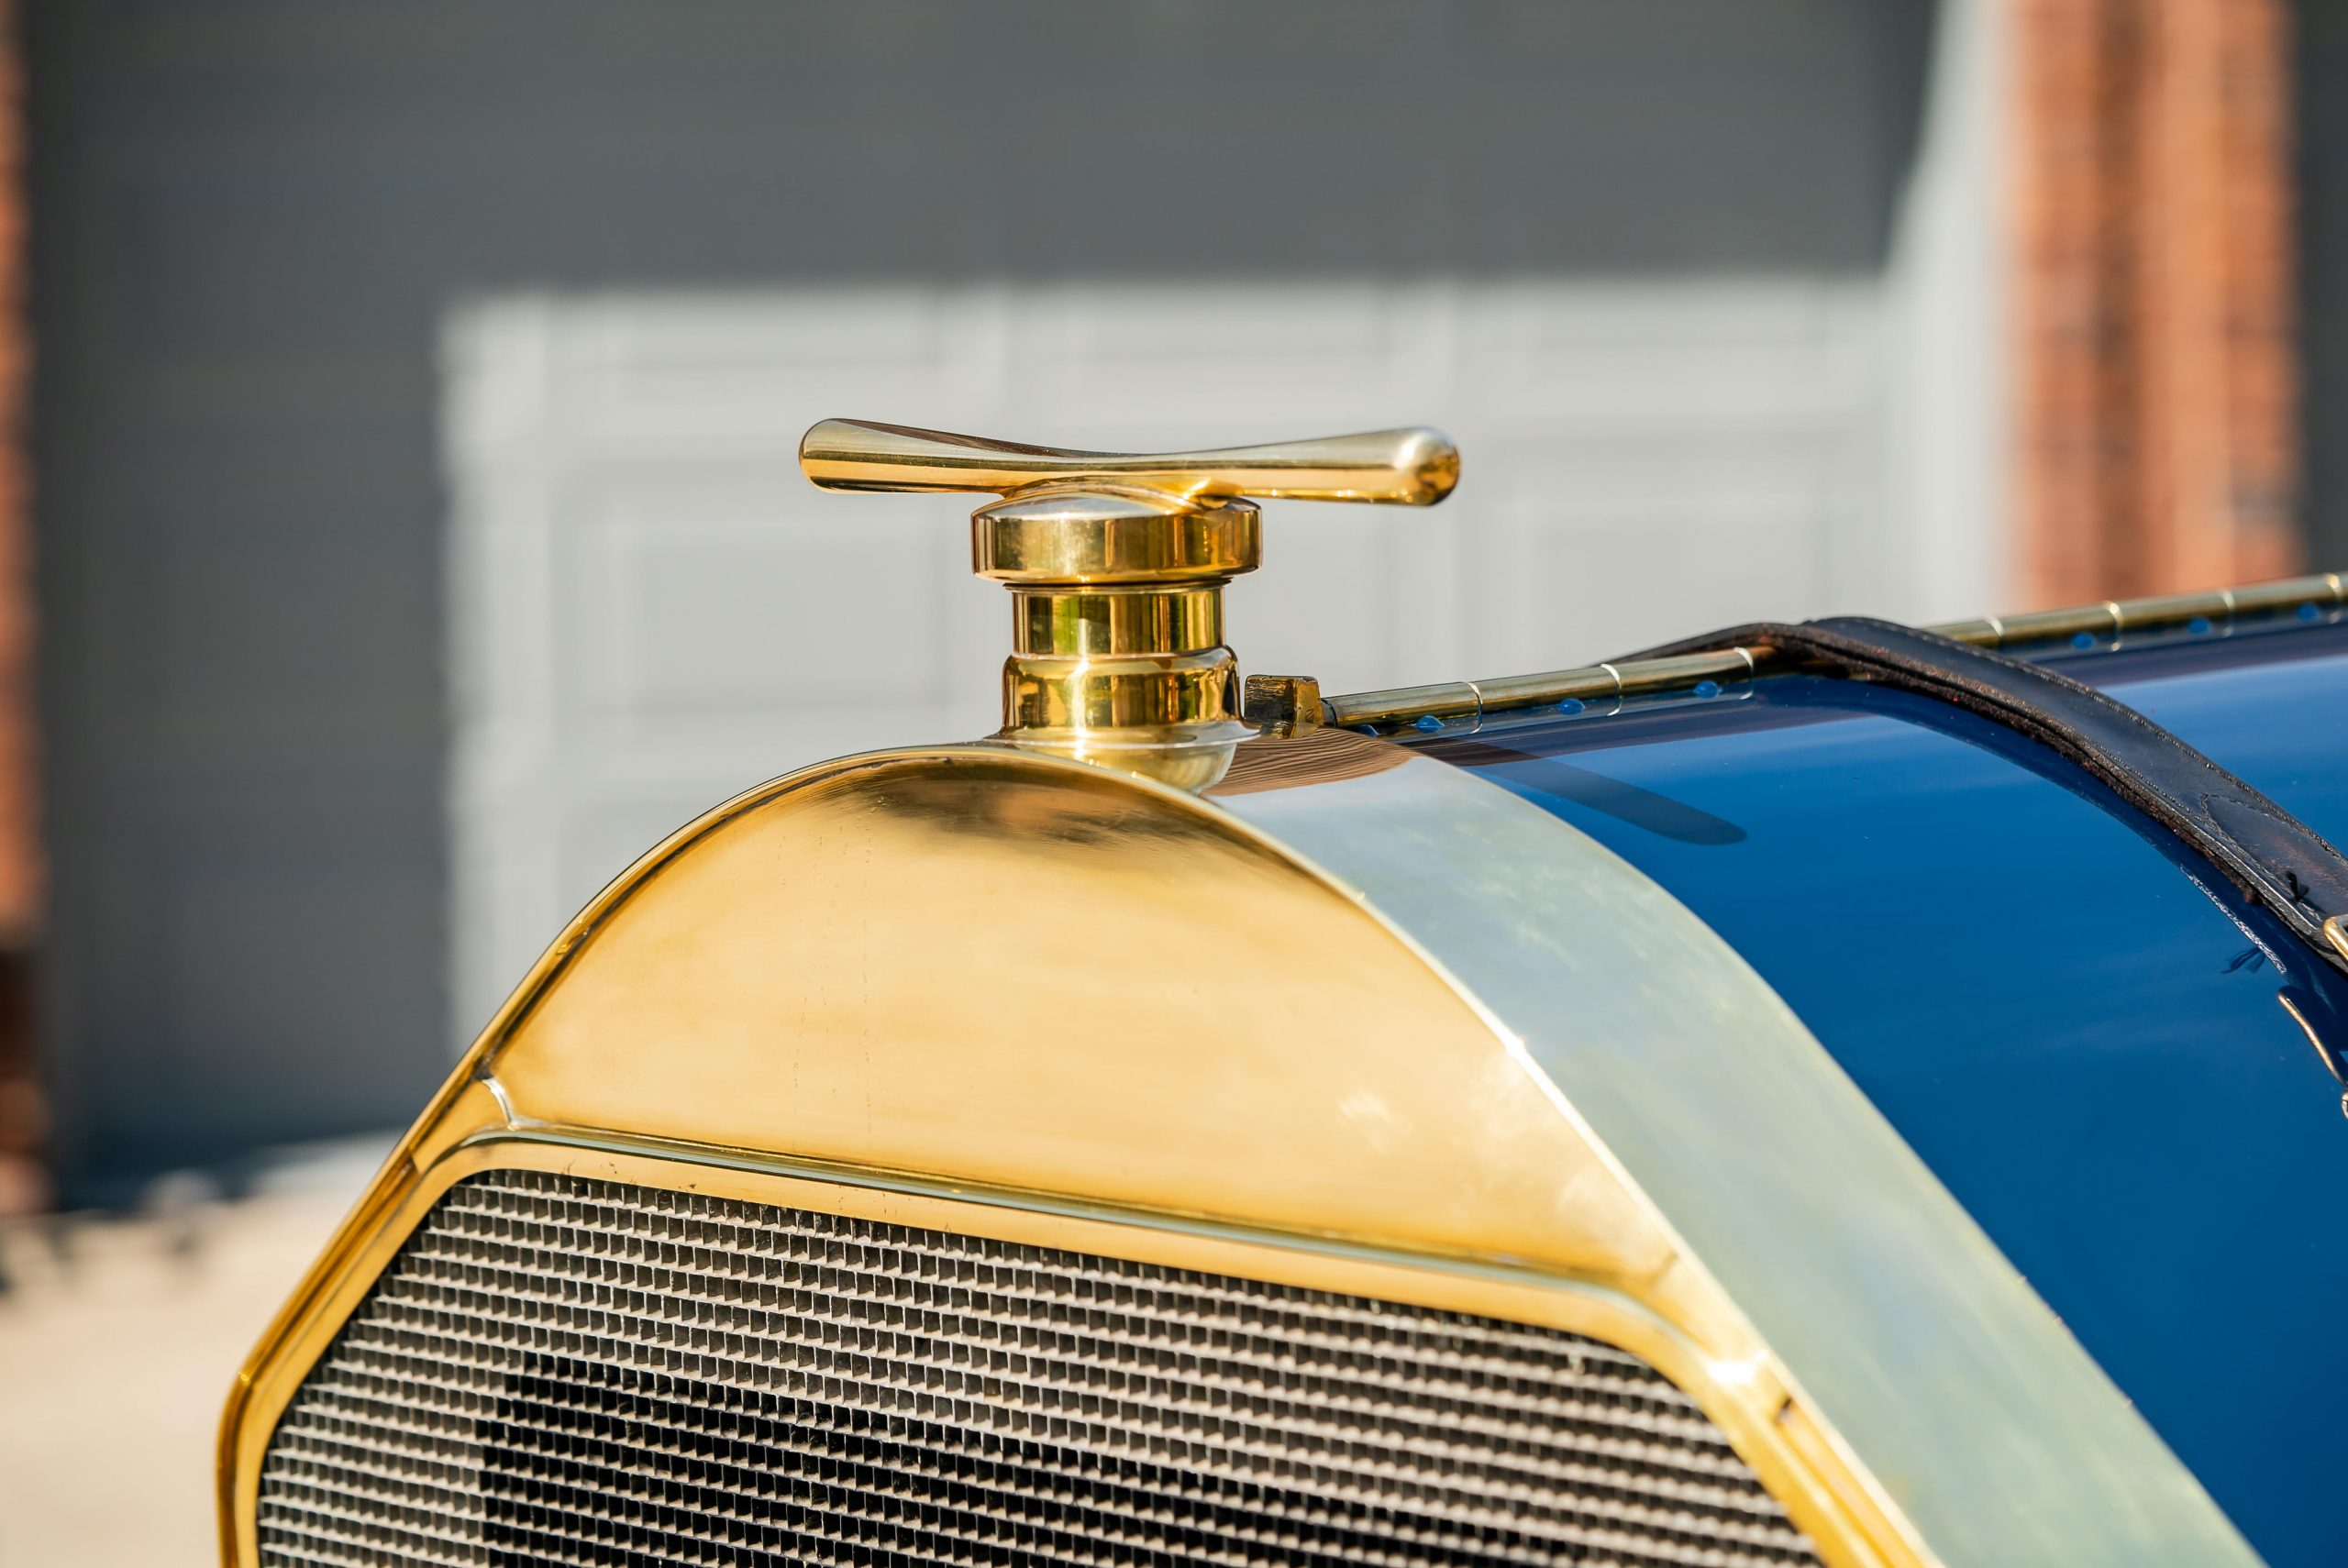 1911 Inter-State Fifty Bulldog Indianapolis Recreation hood ornament